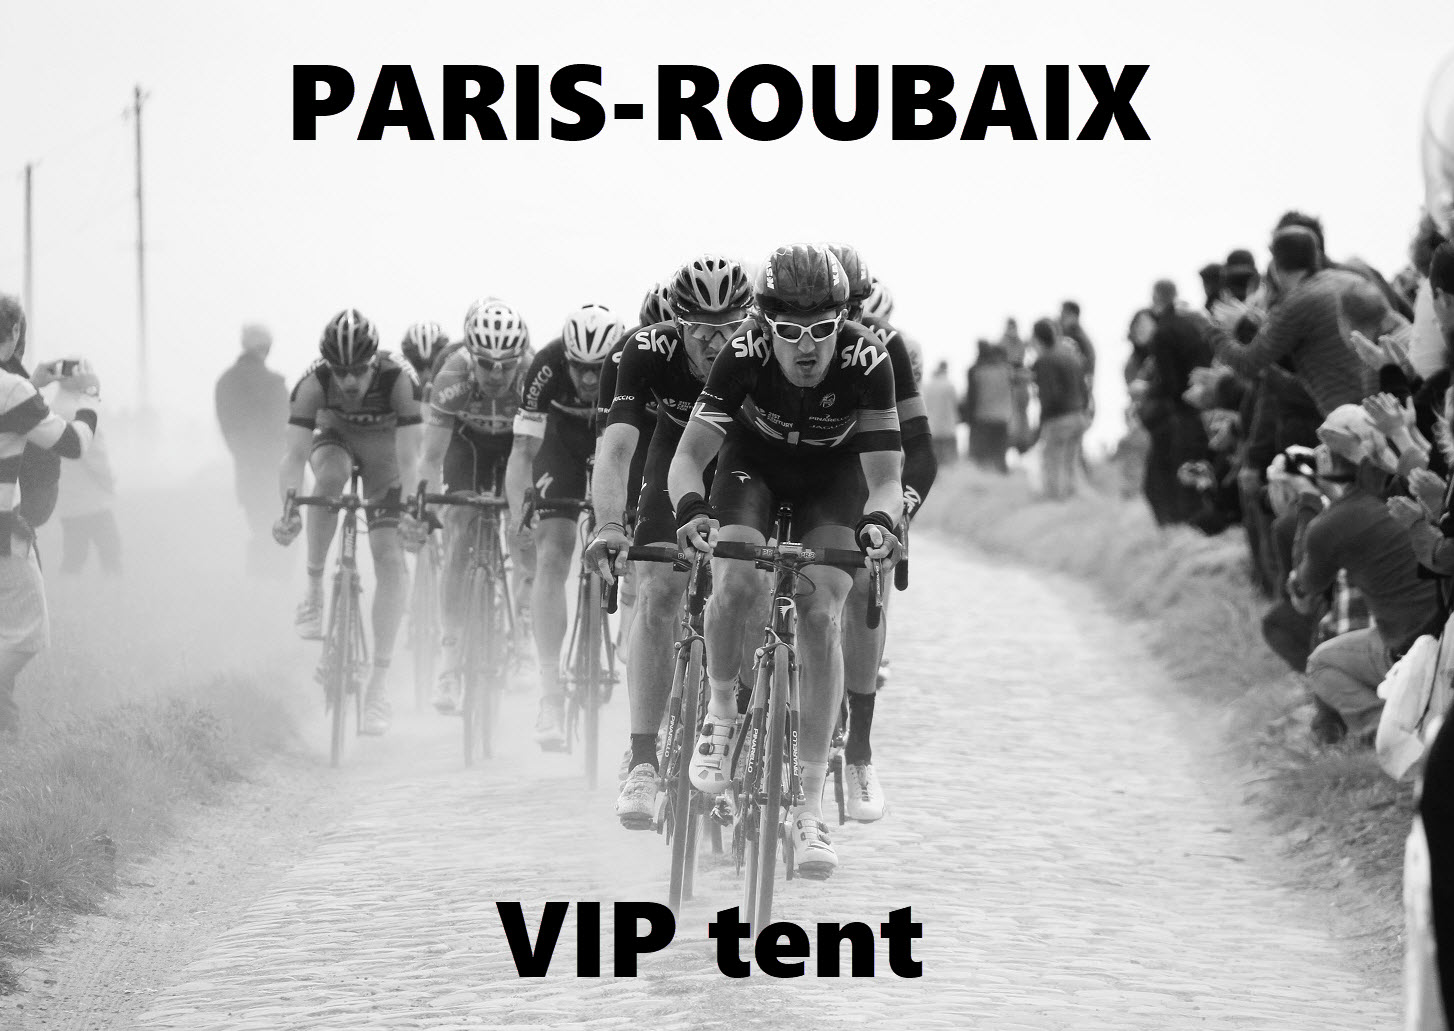 Paris-Roubaix 2019